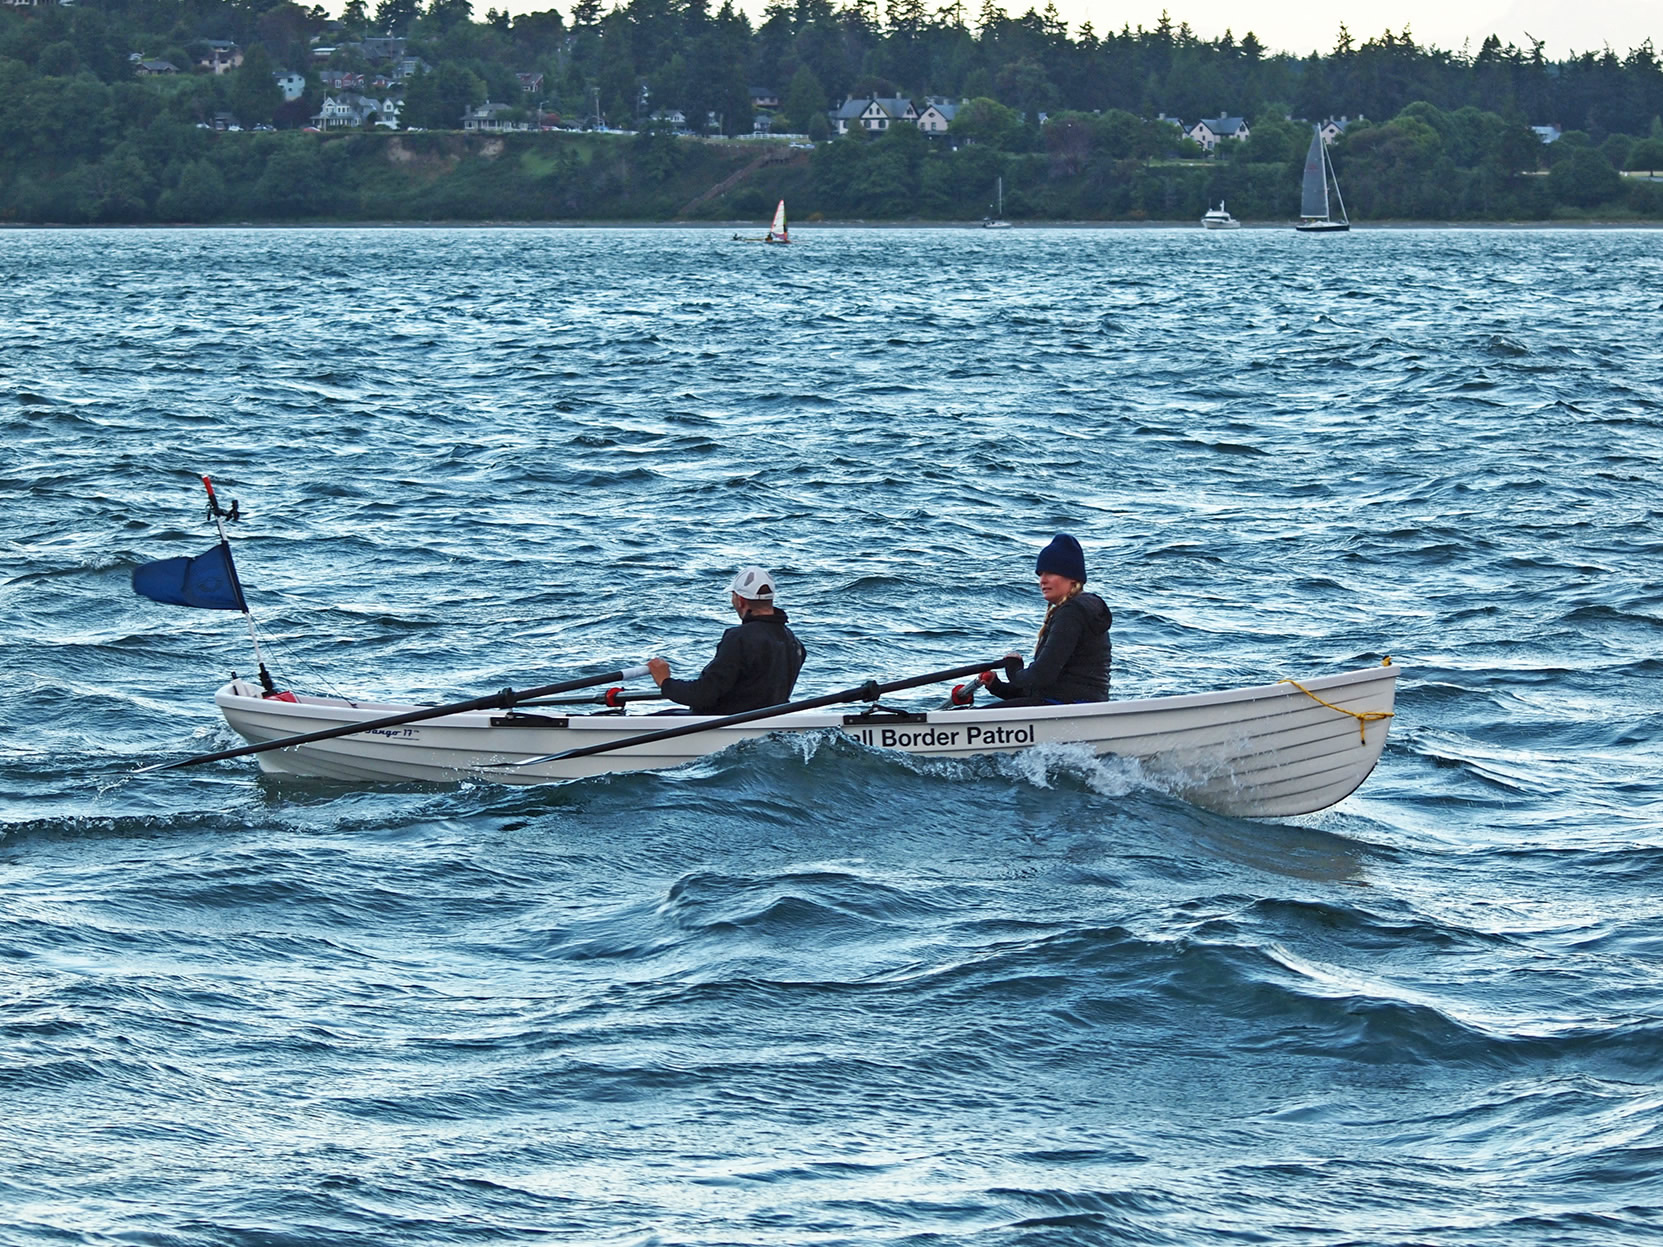 Whitehall-Rowing-and-Sail-Tango-17-Rowboat-Peter-Vogel-and-Diana-R2AK-Race-To-Alaska